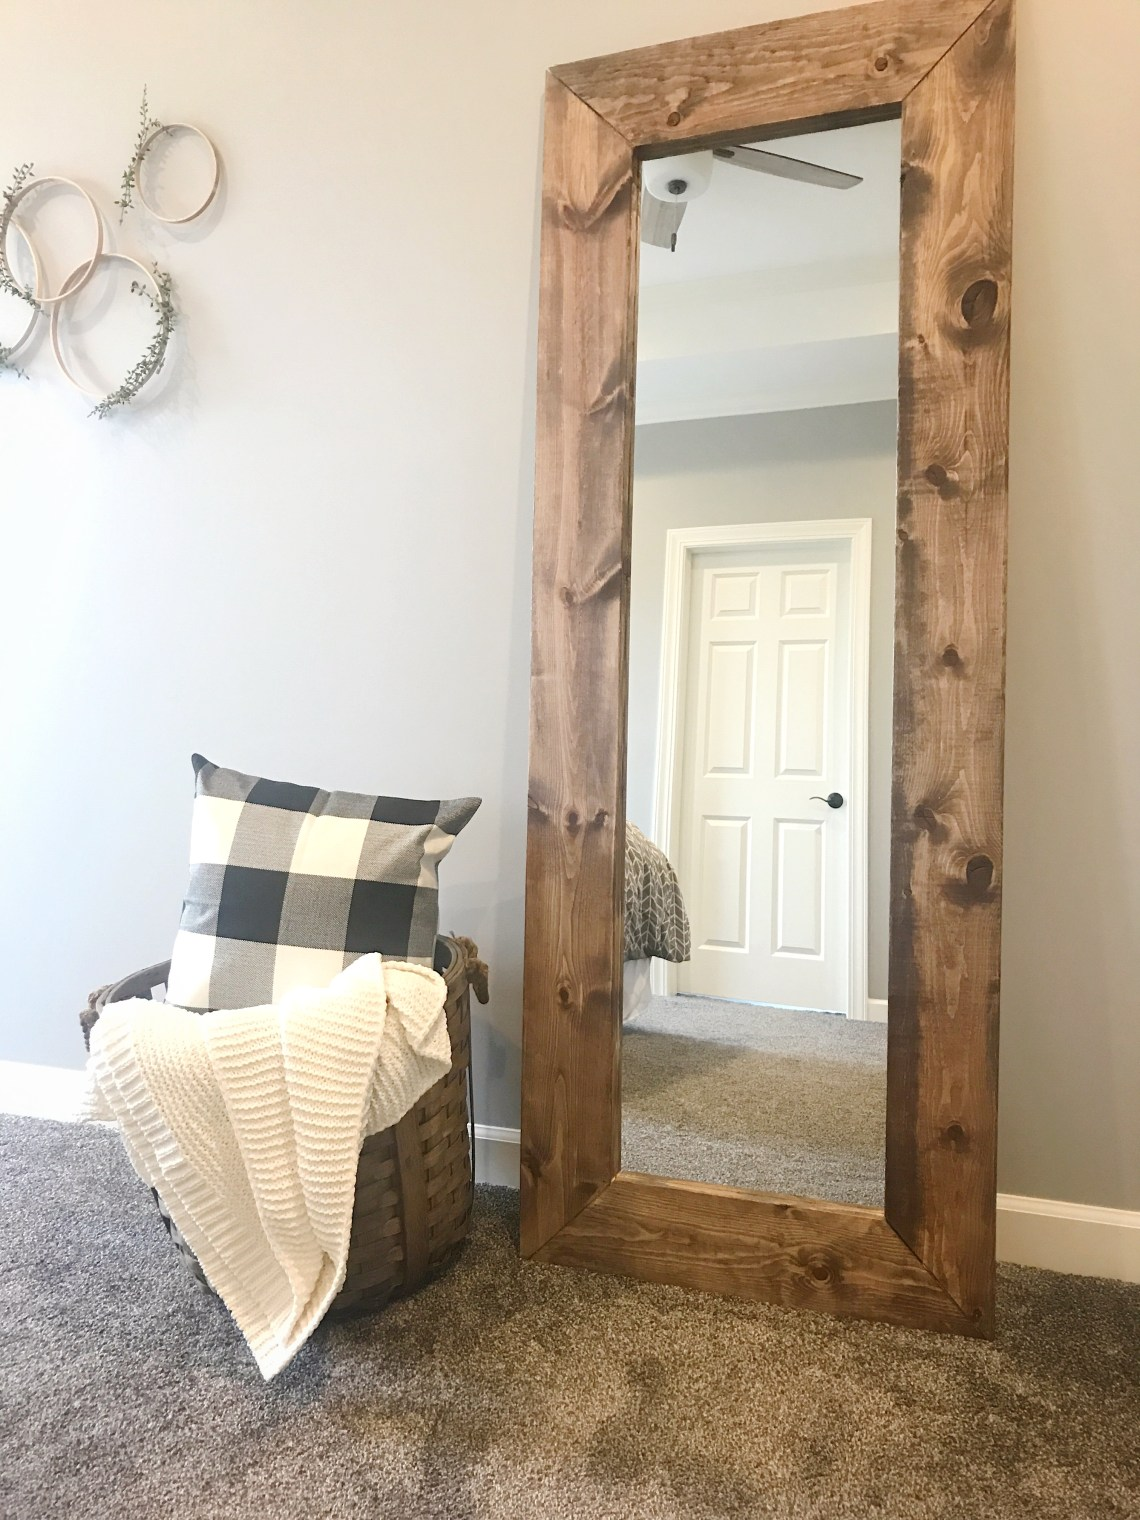 How To Build A Diy Wood Mirror Frame The Holtz House